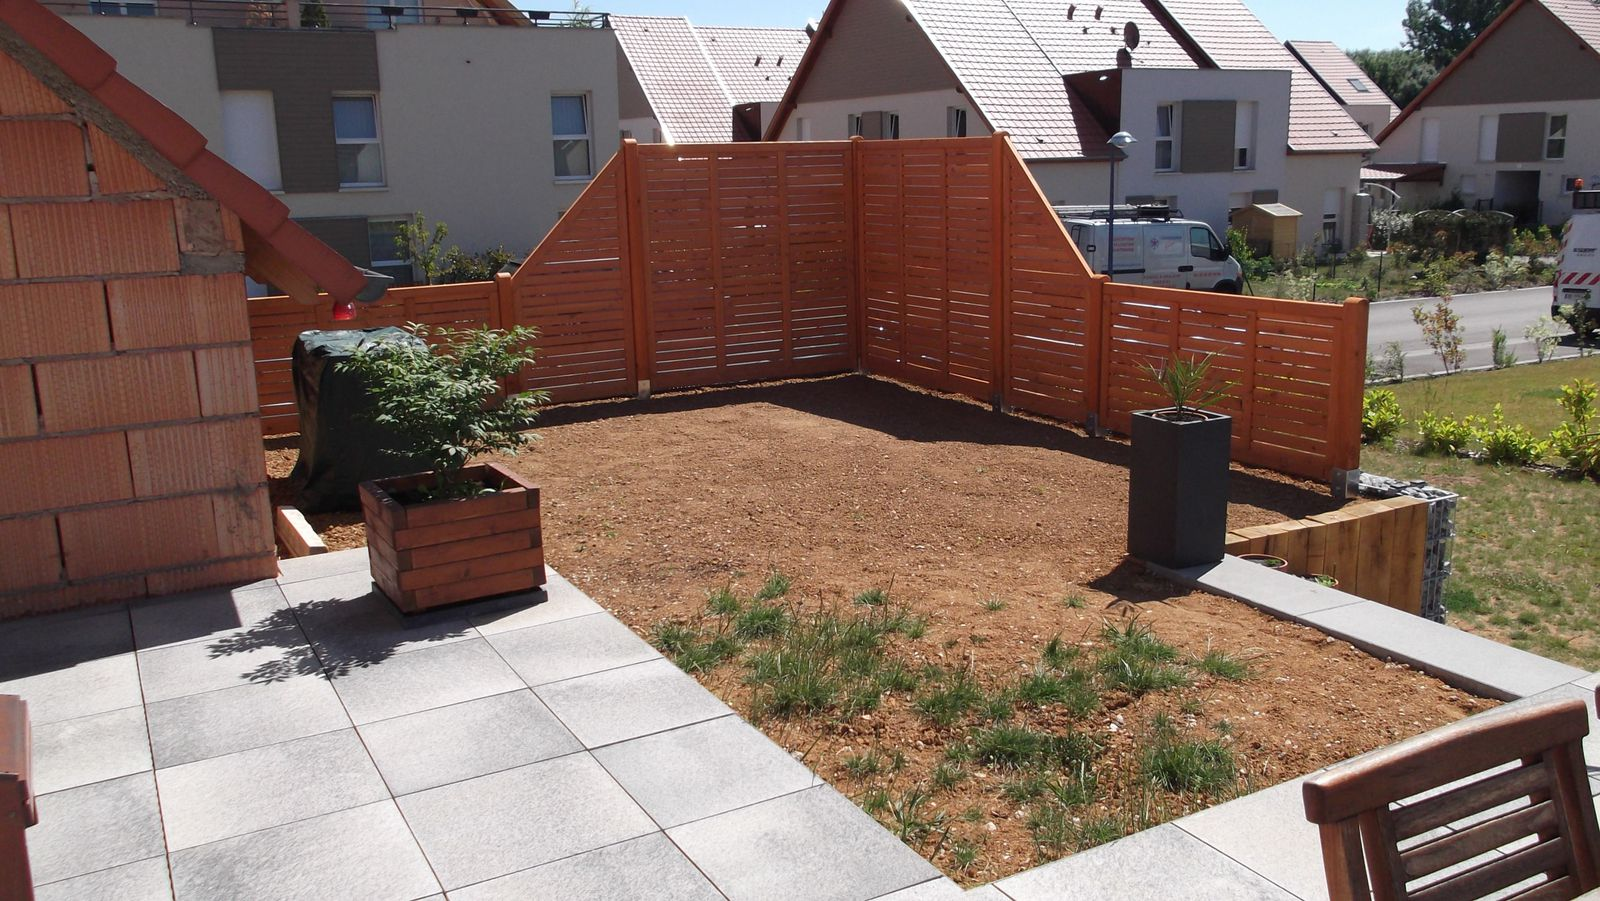 Comment cacher vis a vis jardin beau cacher vis a vis for Amenagement jardin vis a vis